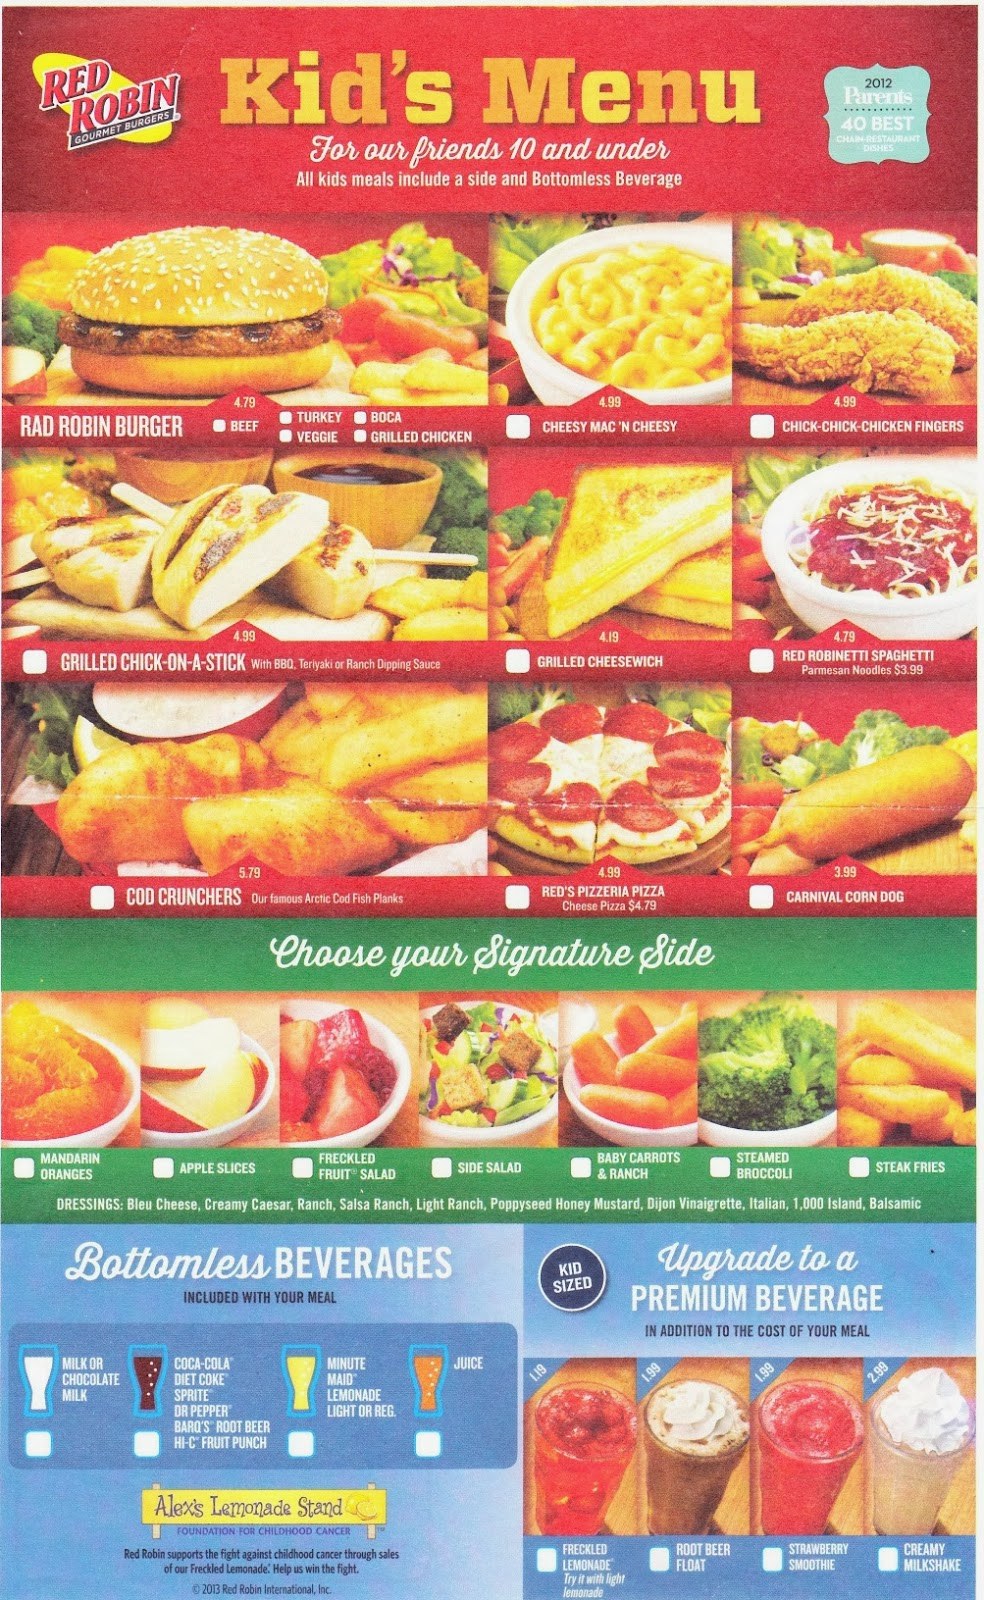 Olive Garden Menu Pdf: The Kids Menu: Red Robin Kids Menu